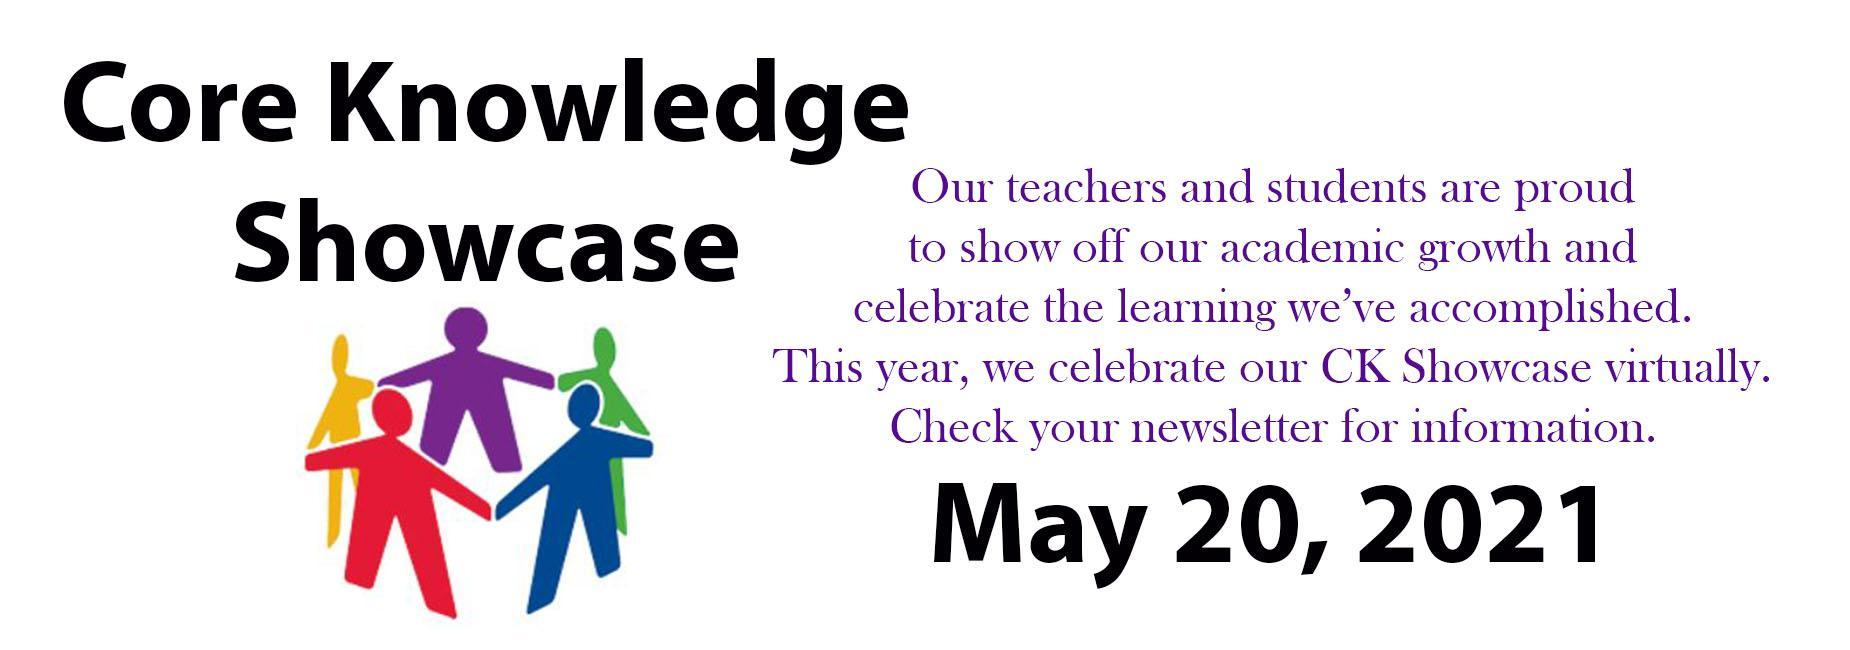 core knowledge showcase, may 20th